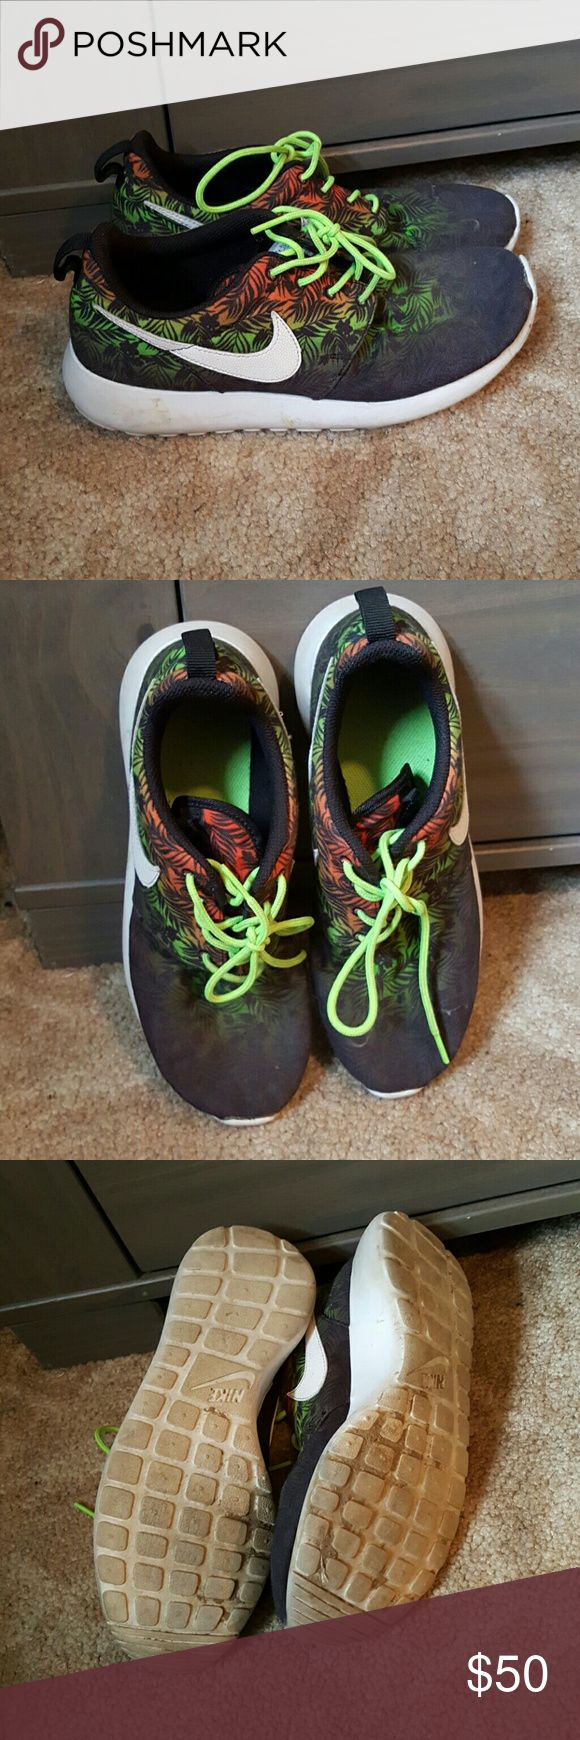 Jungle Print Nike Roshe Runs Black, Orange, Red, Yellow, and Green Ombre with tropical leaves. Size Youth 7 equivilant to a womens 8.5 gently used, nothing a toss in the washer cant clean up. Make me an offer I cant refuse!! Nike Shoes Athletic Shoes